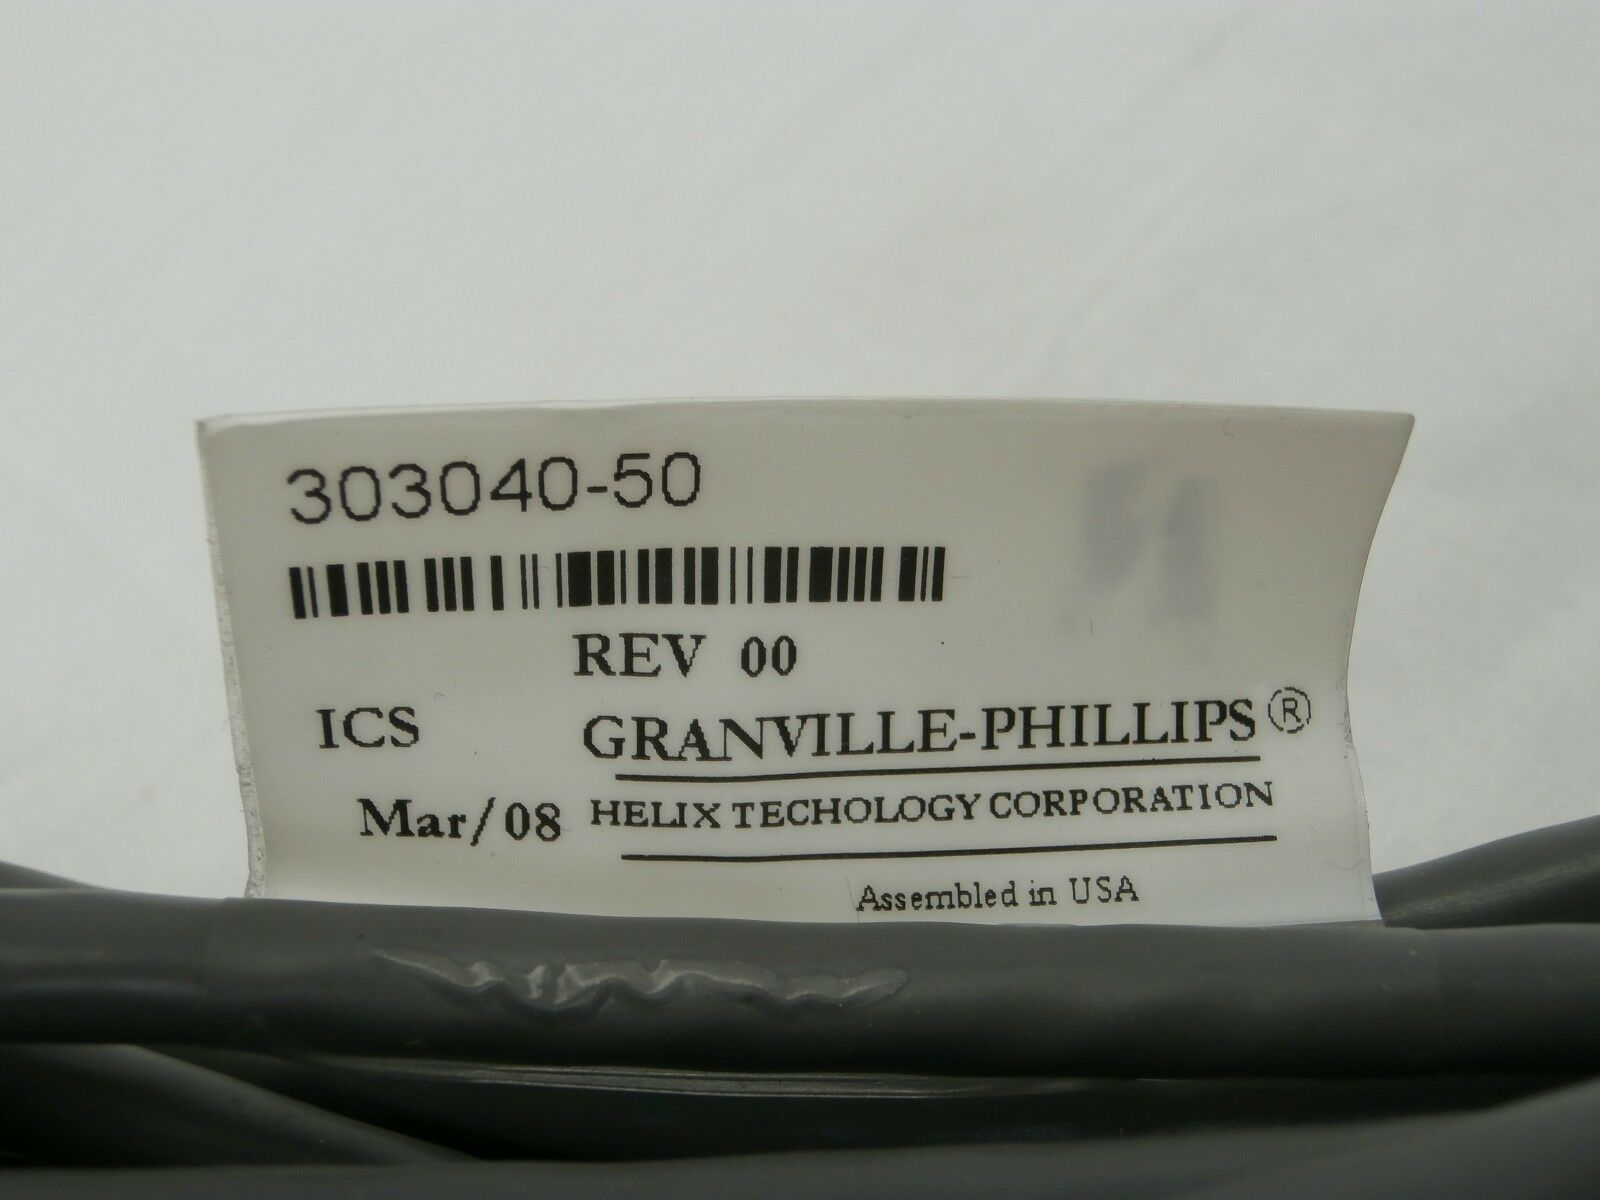 Granville-Phillips 275203 Dual Convectron Gauge Set with Cable 303040-50 Used